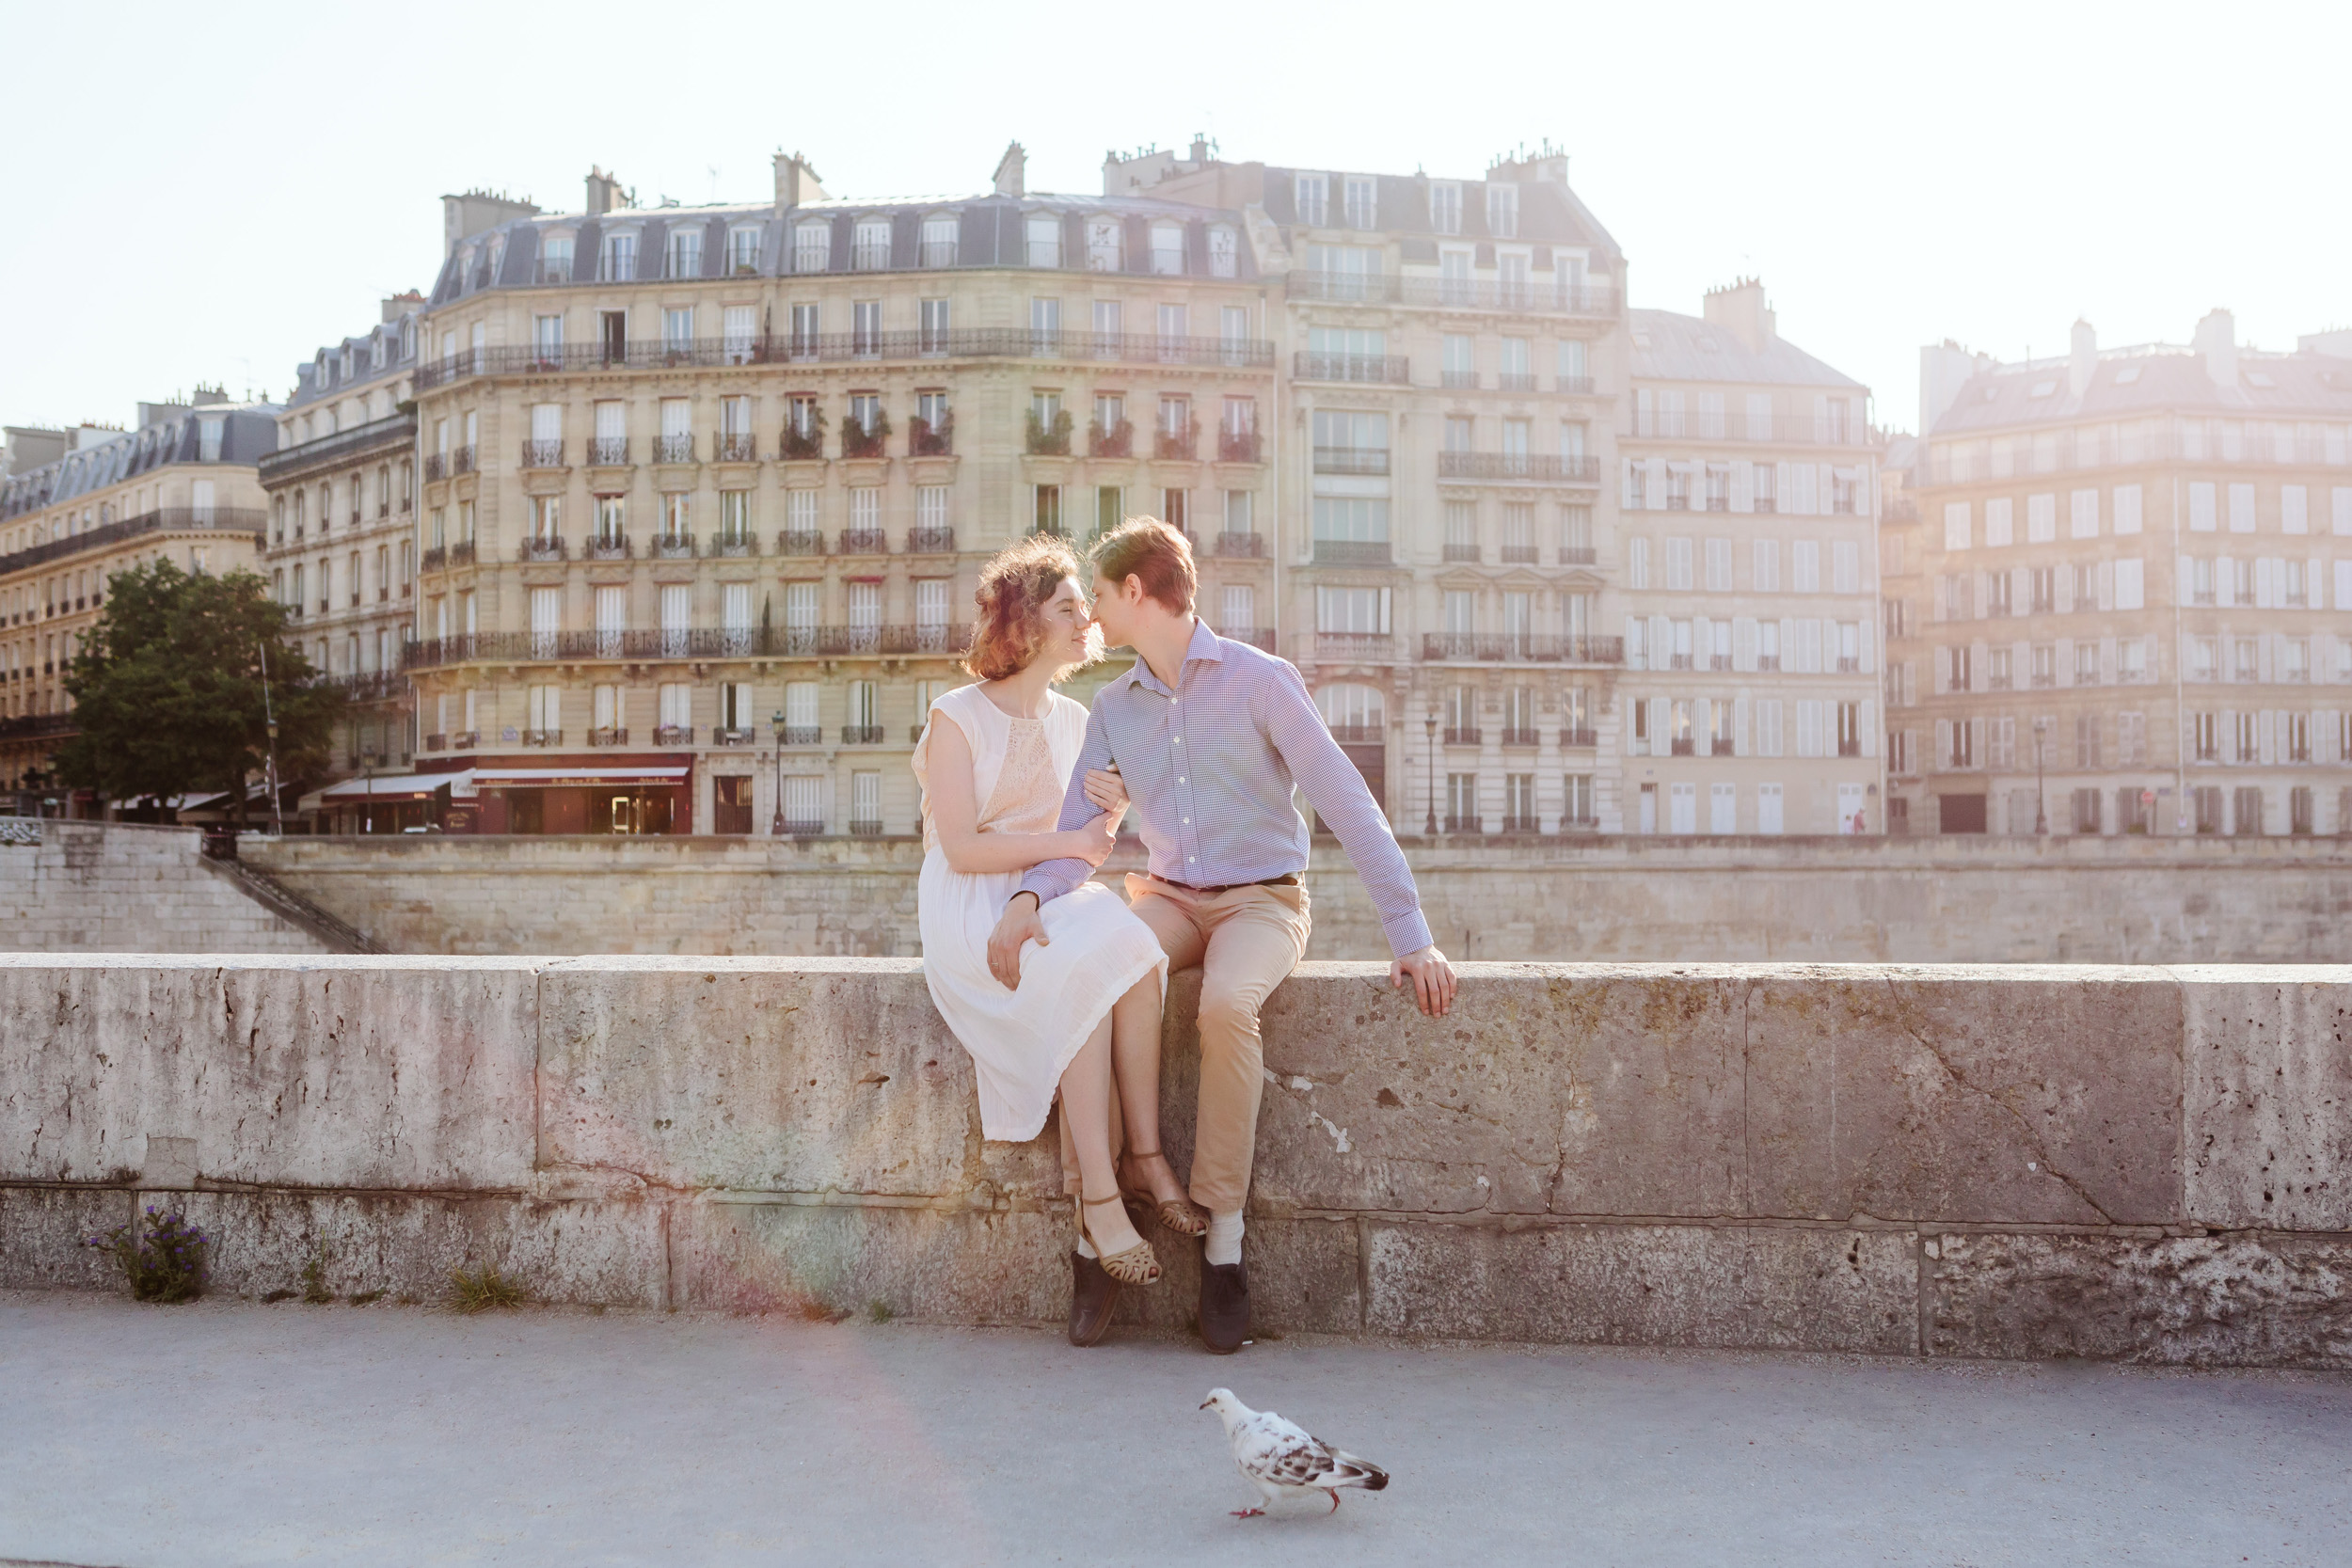 Couple in love kissing by Ile Saint Louis in Paris at sunrise with pigeon walking in the foreground captured by Paris Photographer Federico Guendel IheartParisFr